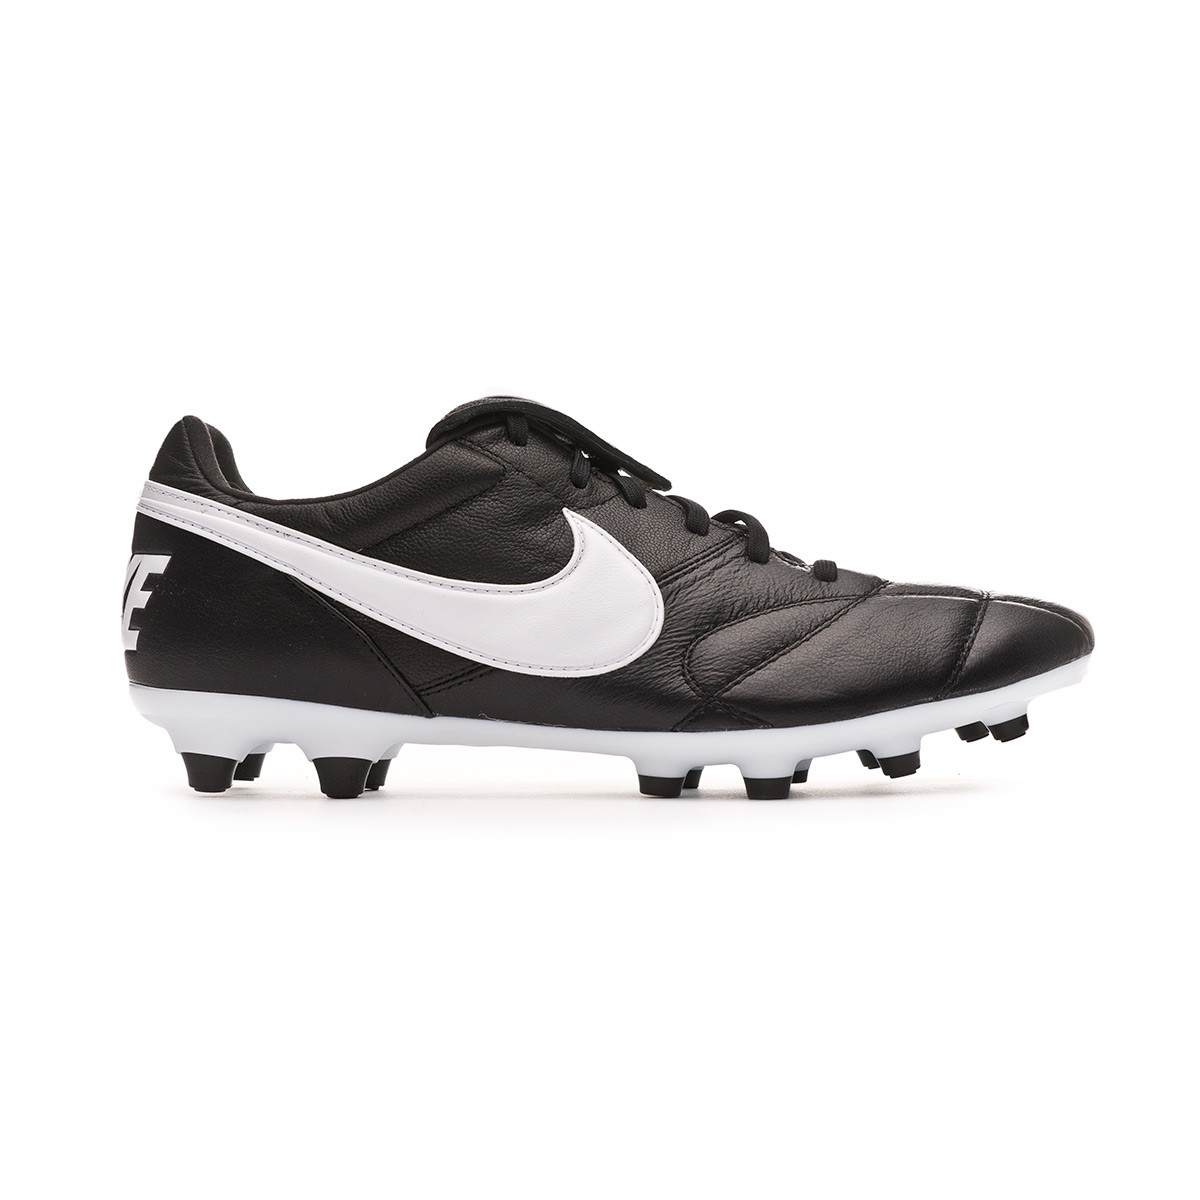 3405fa4e1 Football Boots Nike Tiempo Premier II FG Black-White - Football store  Fútbol Emotion